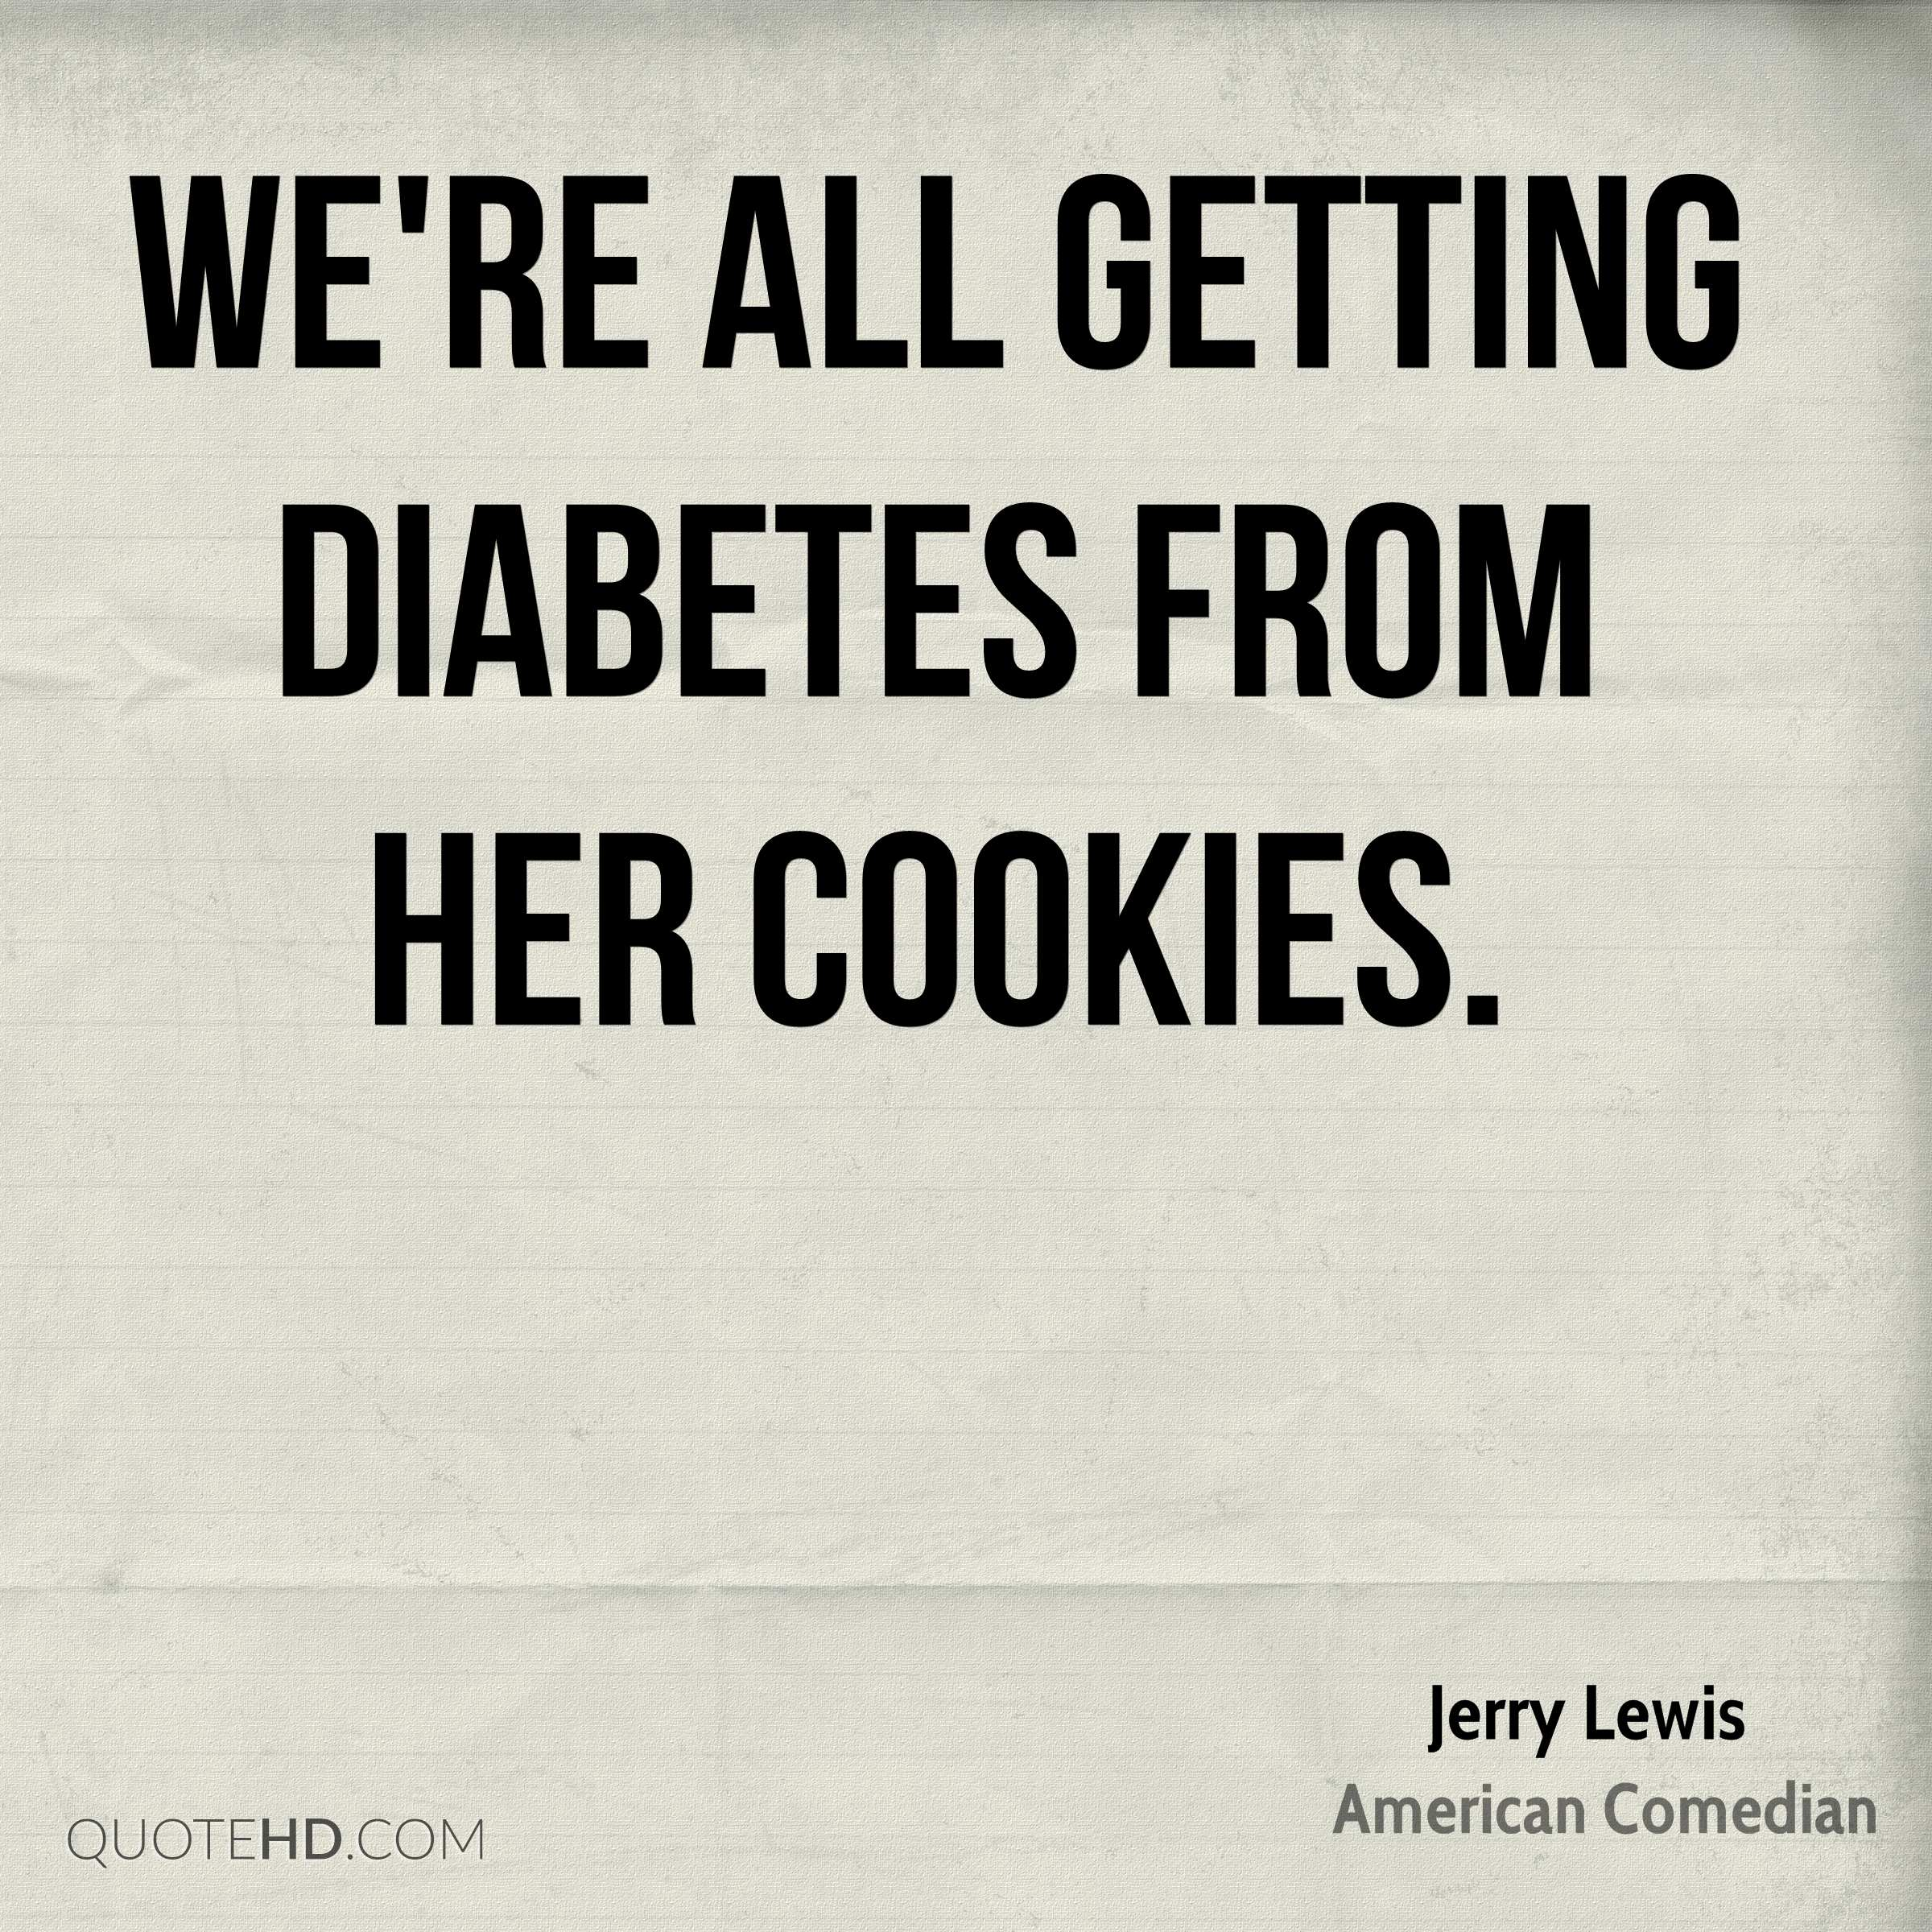 We're all getting diabetes from her cookies.